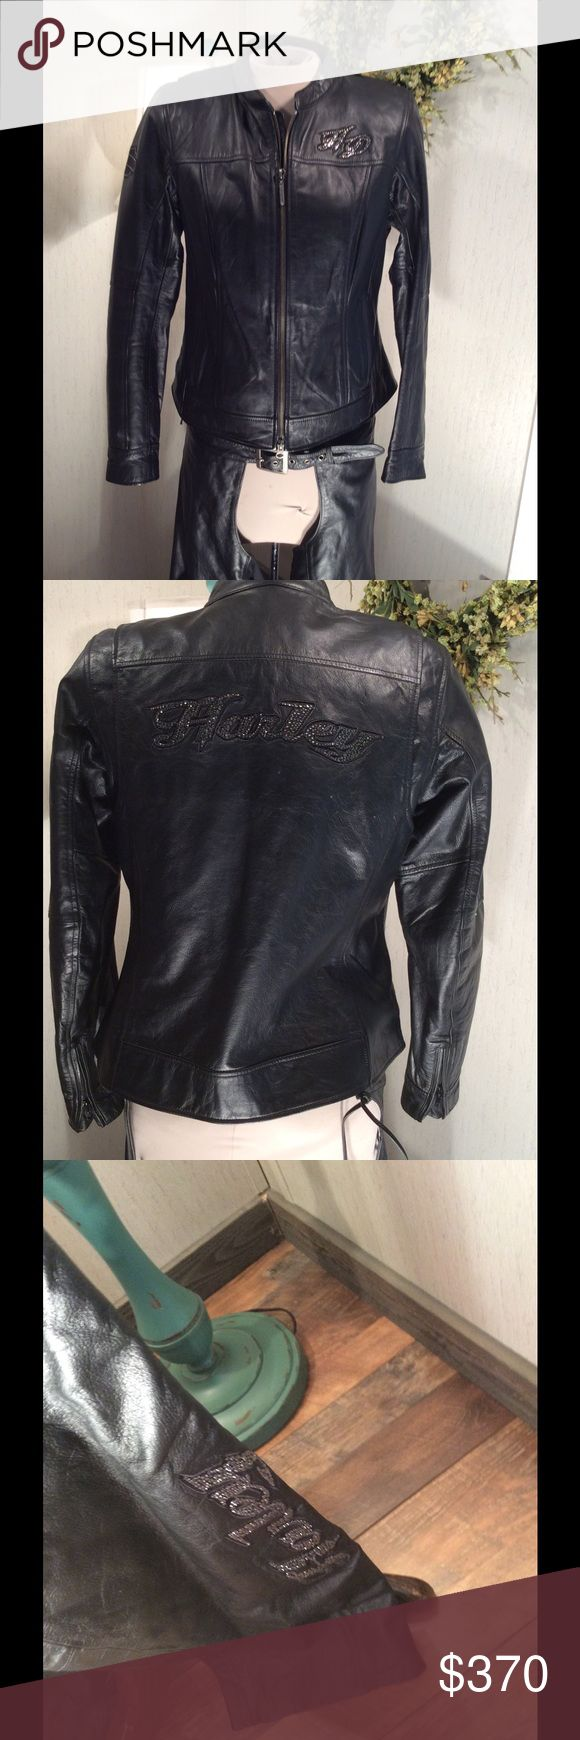 Harley Davidson Bling leather Jacket and Chaps ONE HOUR SALE!!!!!Super hot Harley Davidson Bling leather jacket and matching chaps in buttery soft black leather and an awesome silk silver lining. The jacket was worn once and the chaps have never been worn. This is the perfect set for those classy biker chicks!  Still wrapped in the hang bag from the Harley store!  Jacket size medium and the chaps are a large. Harley Davidson Jackets & Coats